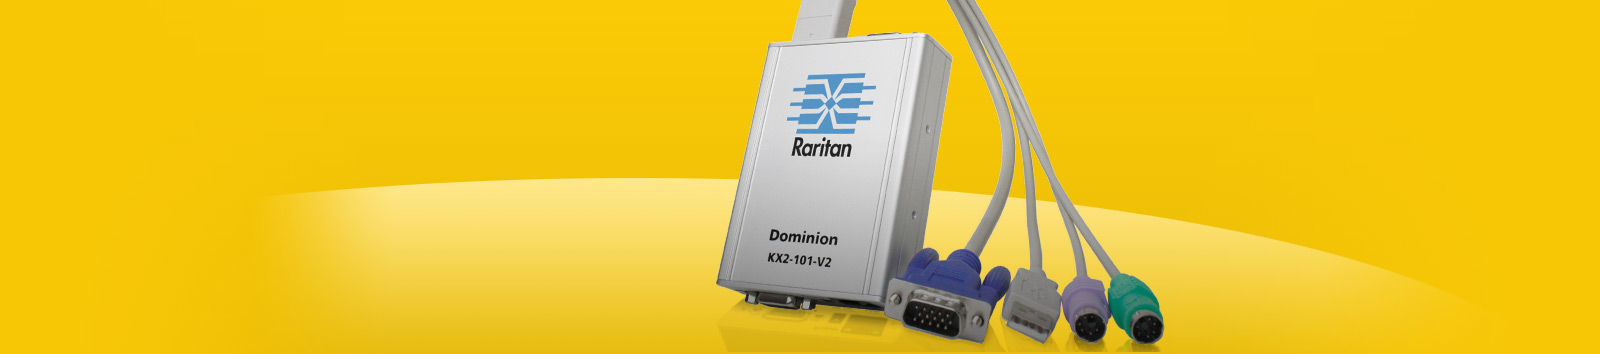 Raritan Dominion DKX2-101-V2 2 User 1 Port KVM Over IP KVM Gateway